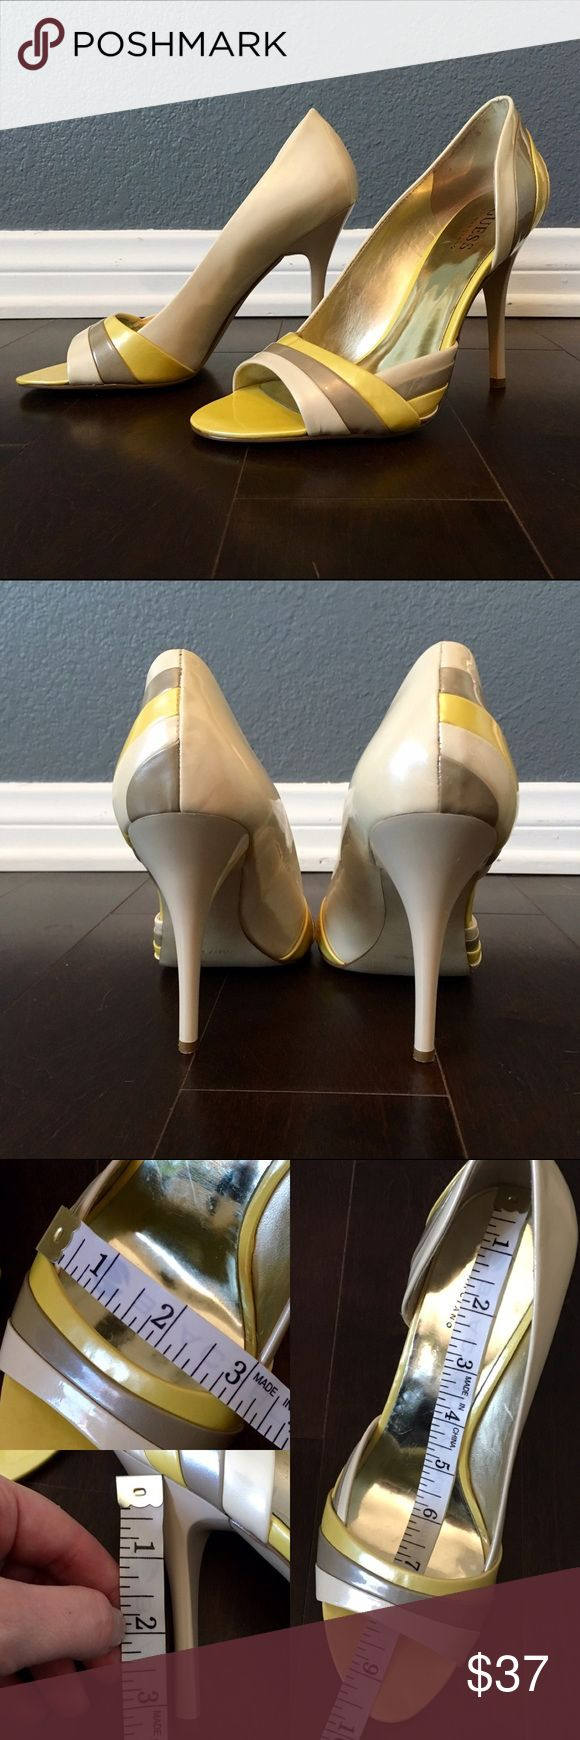 """Creamy metallic open toe half d'orsay heels Very lightly worn w/ no obvious defects. I'm US7 & when I wear them my toes are about 0.5 inch away from front edge, so these are great for folks that have long toes (I don't) or maybe a small size 7.5?? See measurement photos. About 3.5"""" tall so they're high enough to lengthen legs & flex calf muscles but not redonkulously impossible to walk in. Subtle metallic nude/yellow/taupe--not super yellow but more like honey mustard. I ordered online but…"""